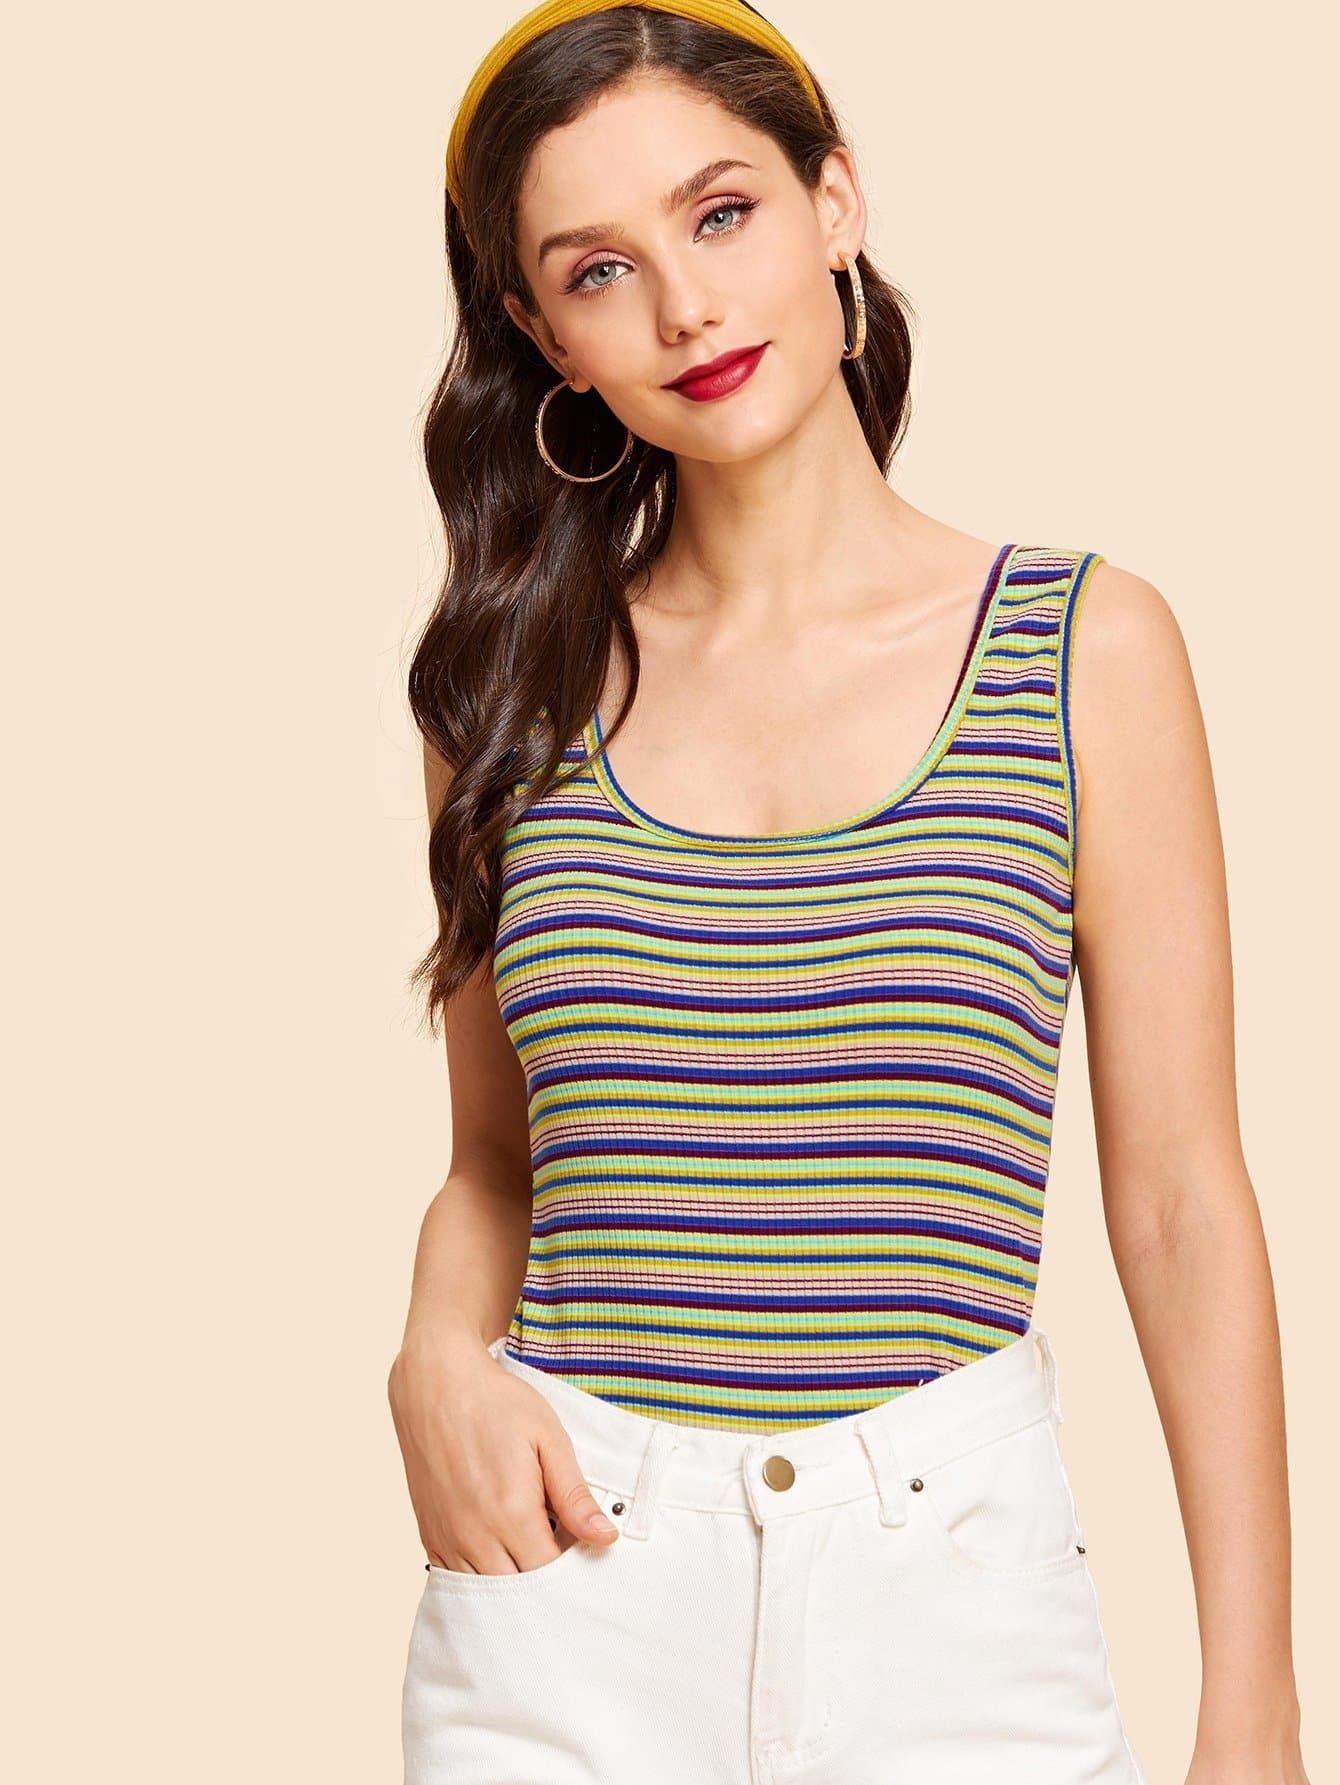 Striped Print Scoop Neck Tank Top scoop neck graphic tank top